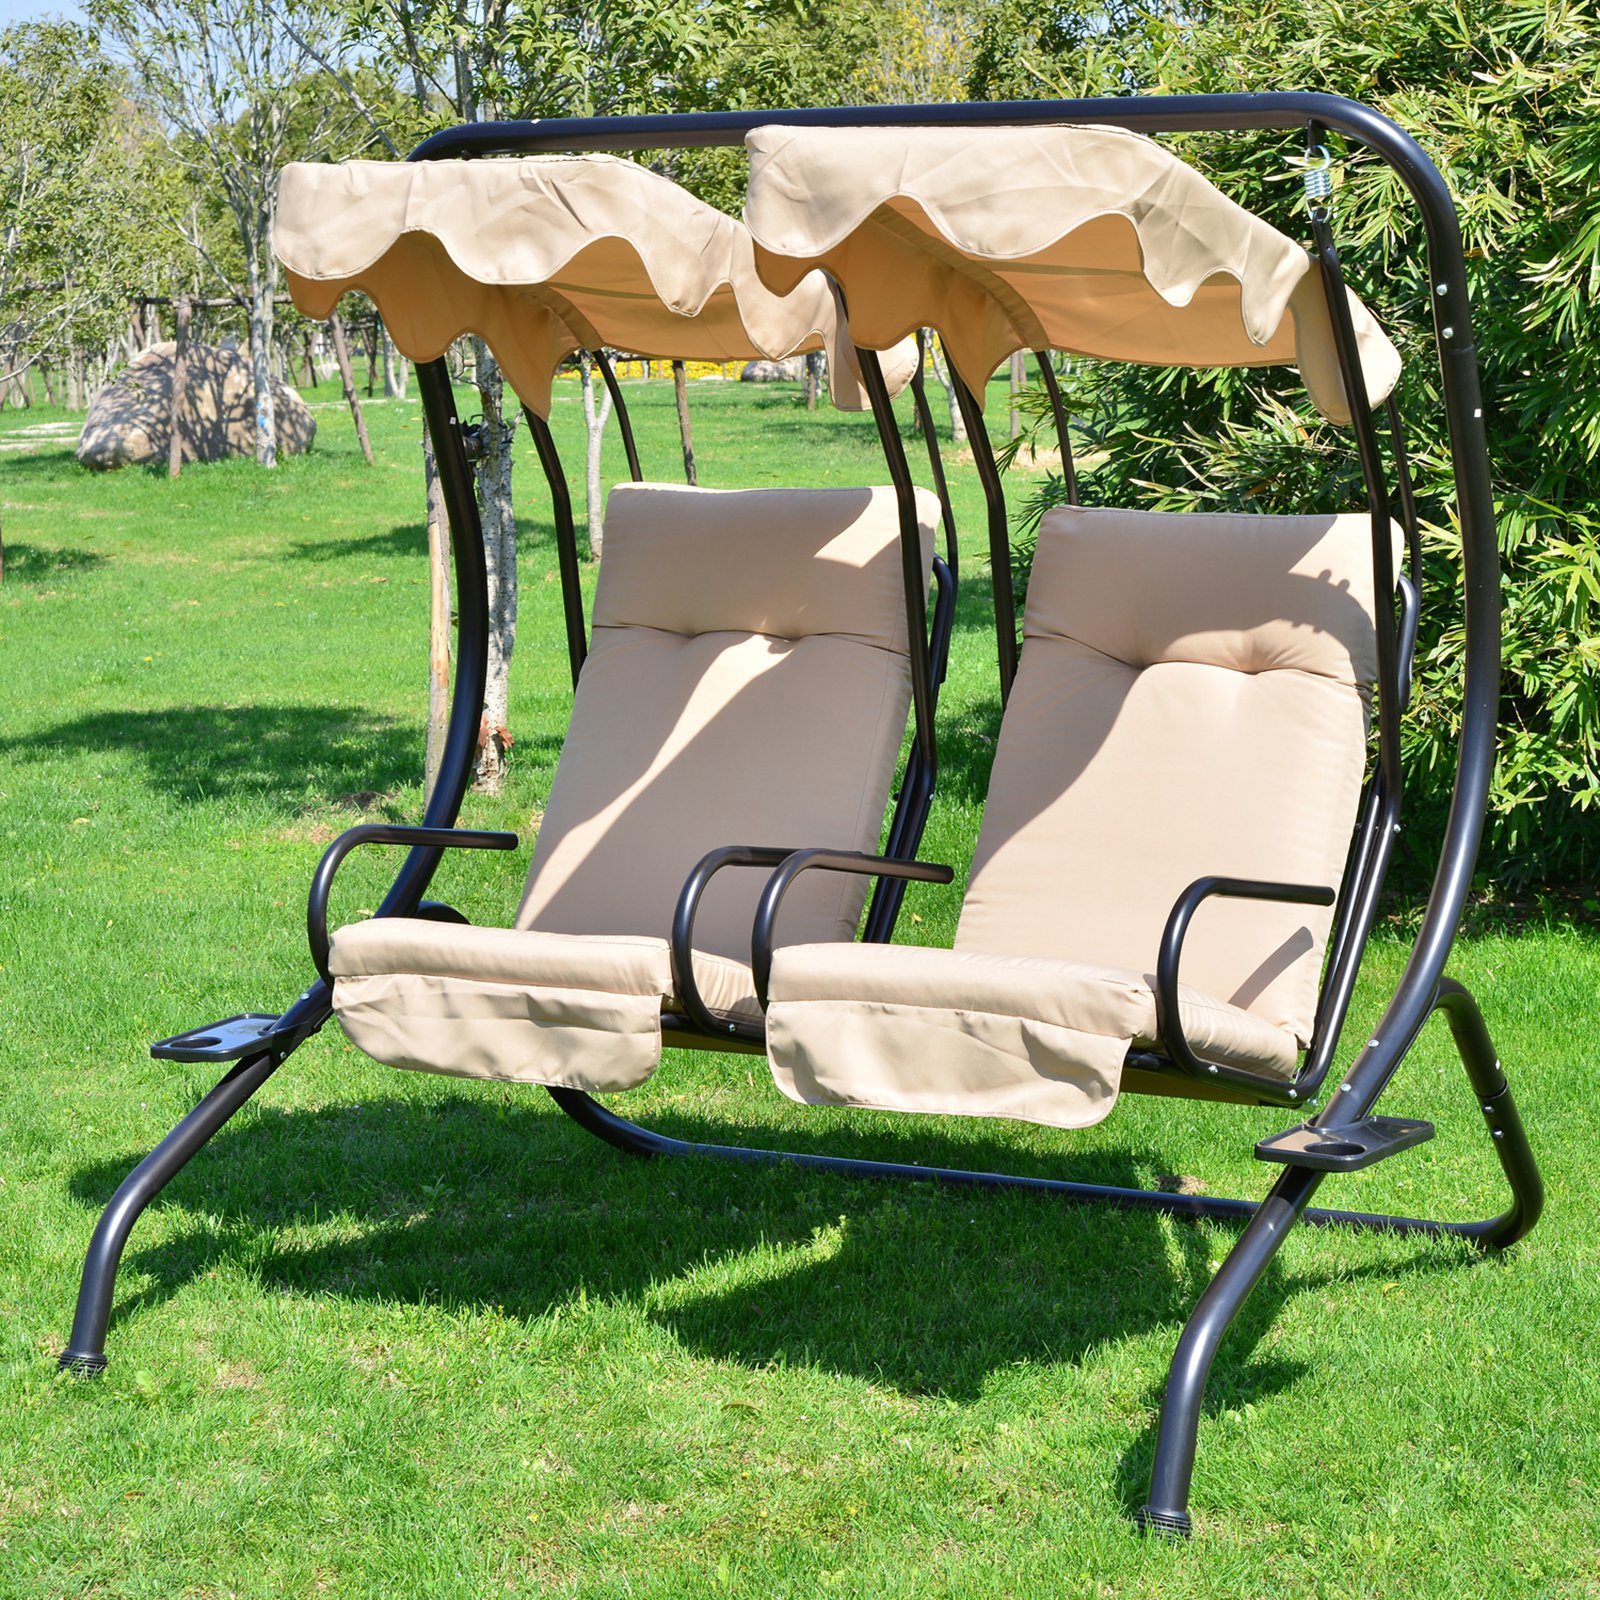 Outsunny Covered Metal Double Seat Canopy Porch Swing & Outsunny Covered Metal Double Seat Canopy Porch Swing - Walmart.com